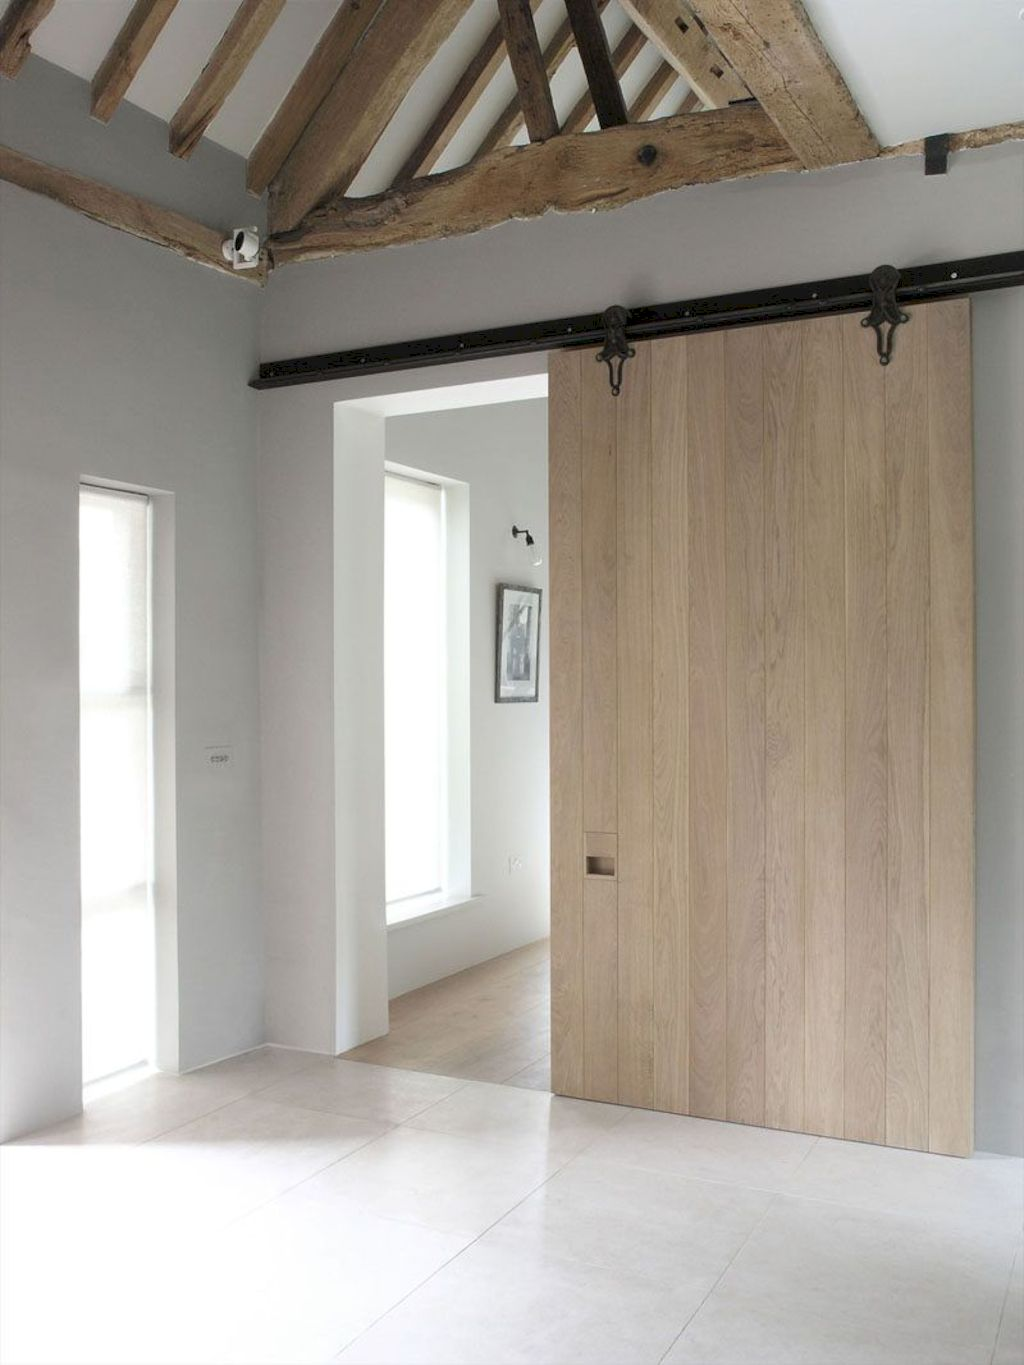 Barn style sliding doors designed for modern rustic home look lovely with traditional finish Image 3